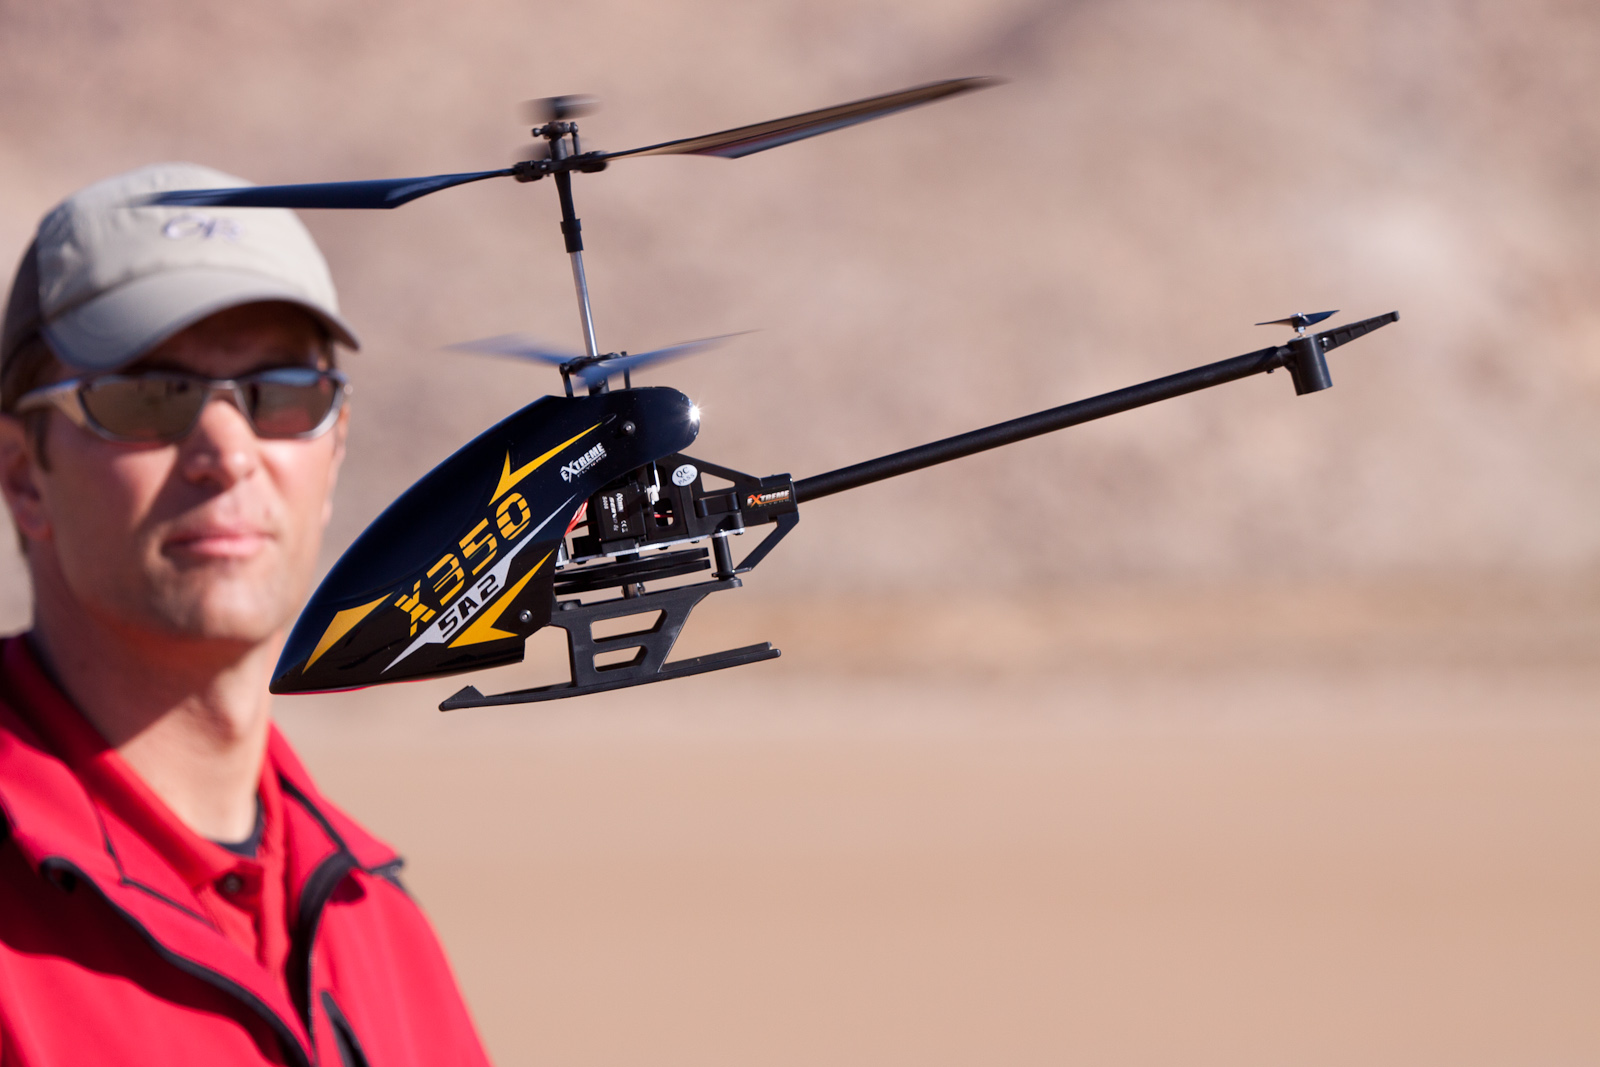 Extreme Flyers X350: an agile coaxial that can handle the wind